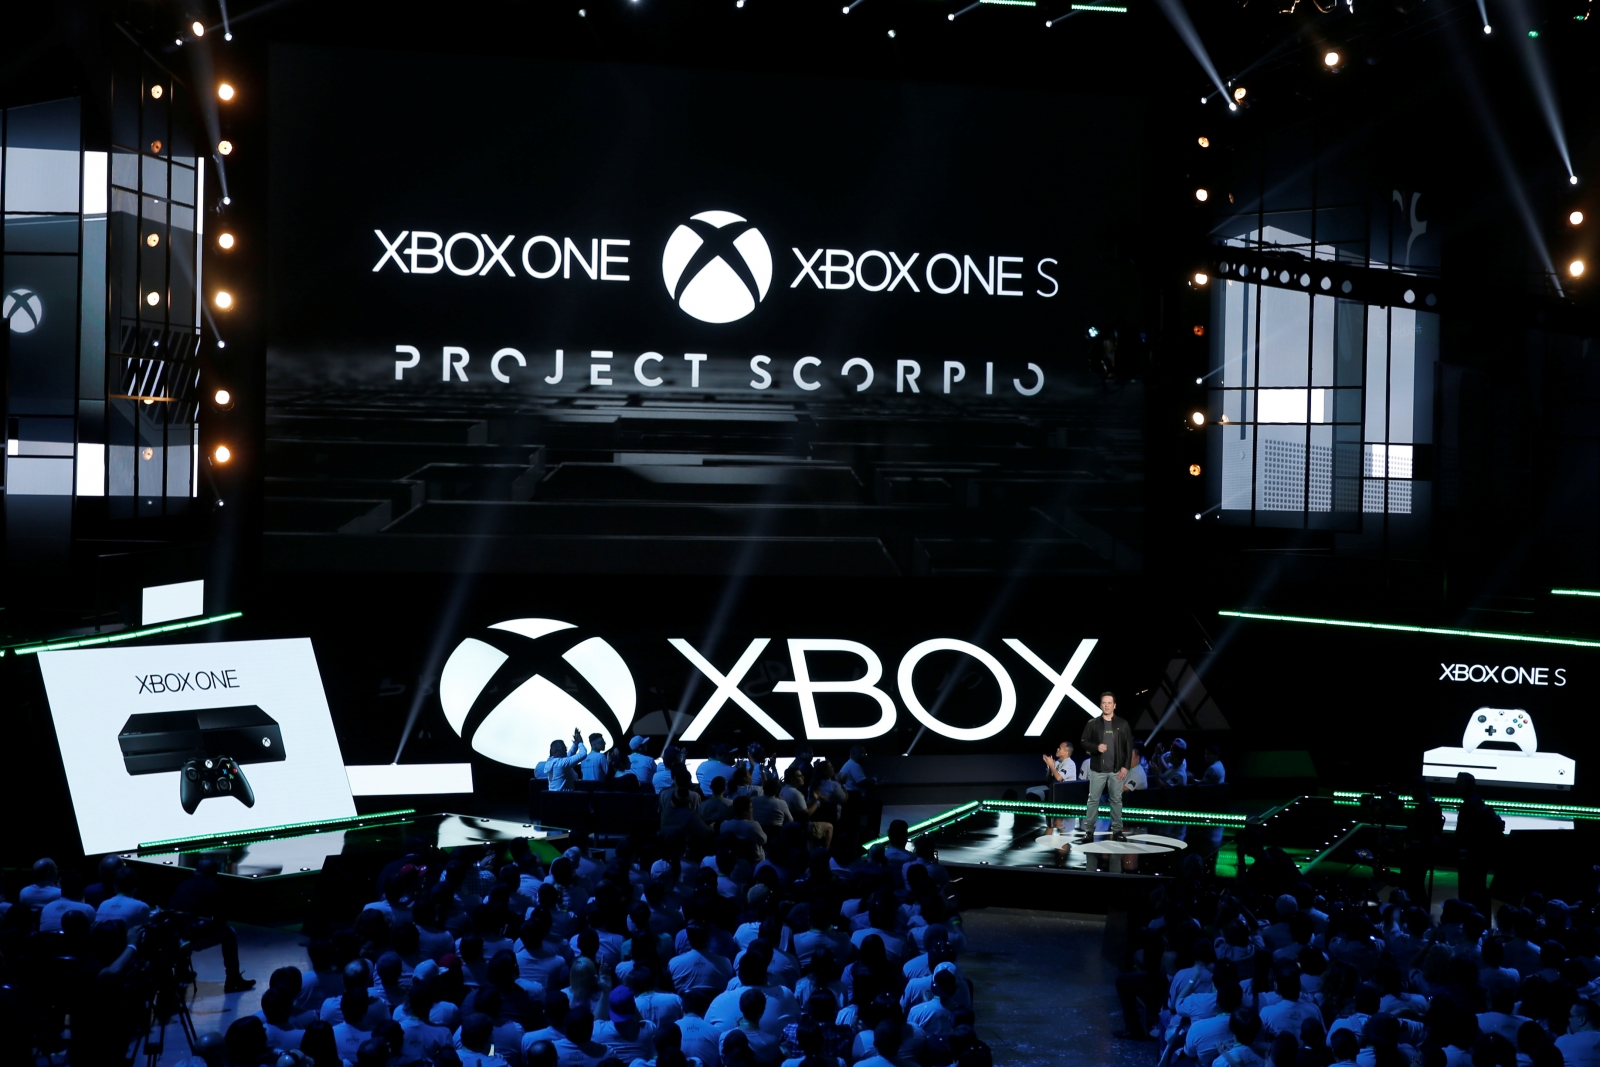 What Is Xbox One Project Scorpio Everything You Need To Know About Microsofts 4K VR Console